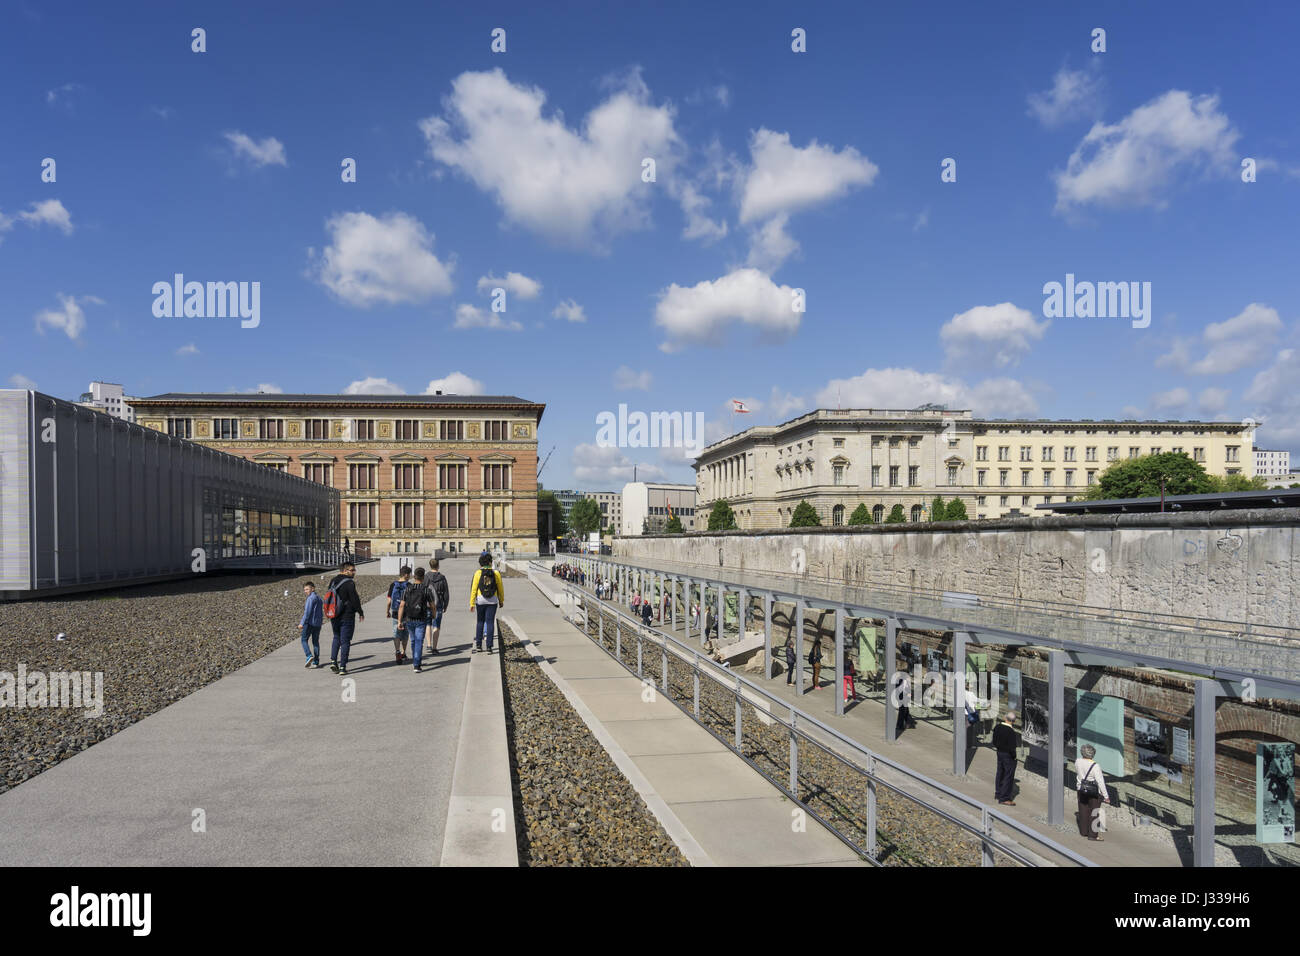 Topography of Terror, Documentation Center of Nazi Terror with parts of the Berlin Wall, Berlin, Germany - Stock Image